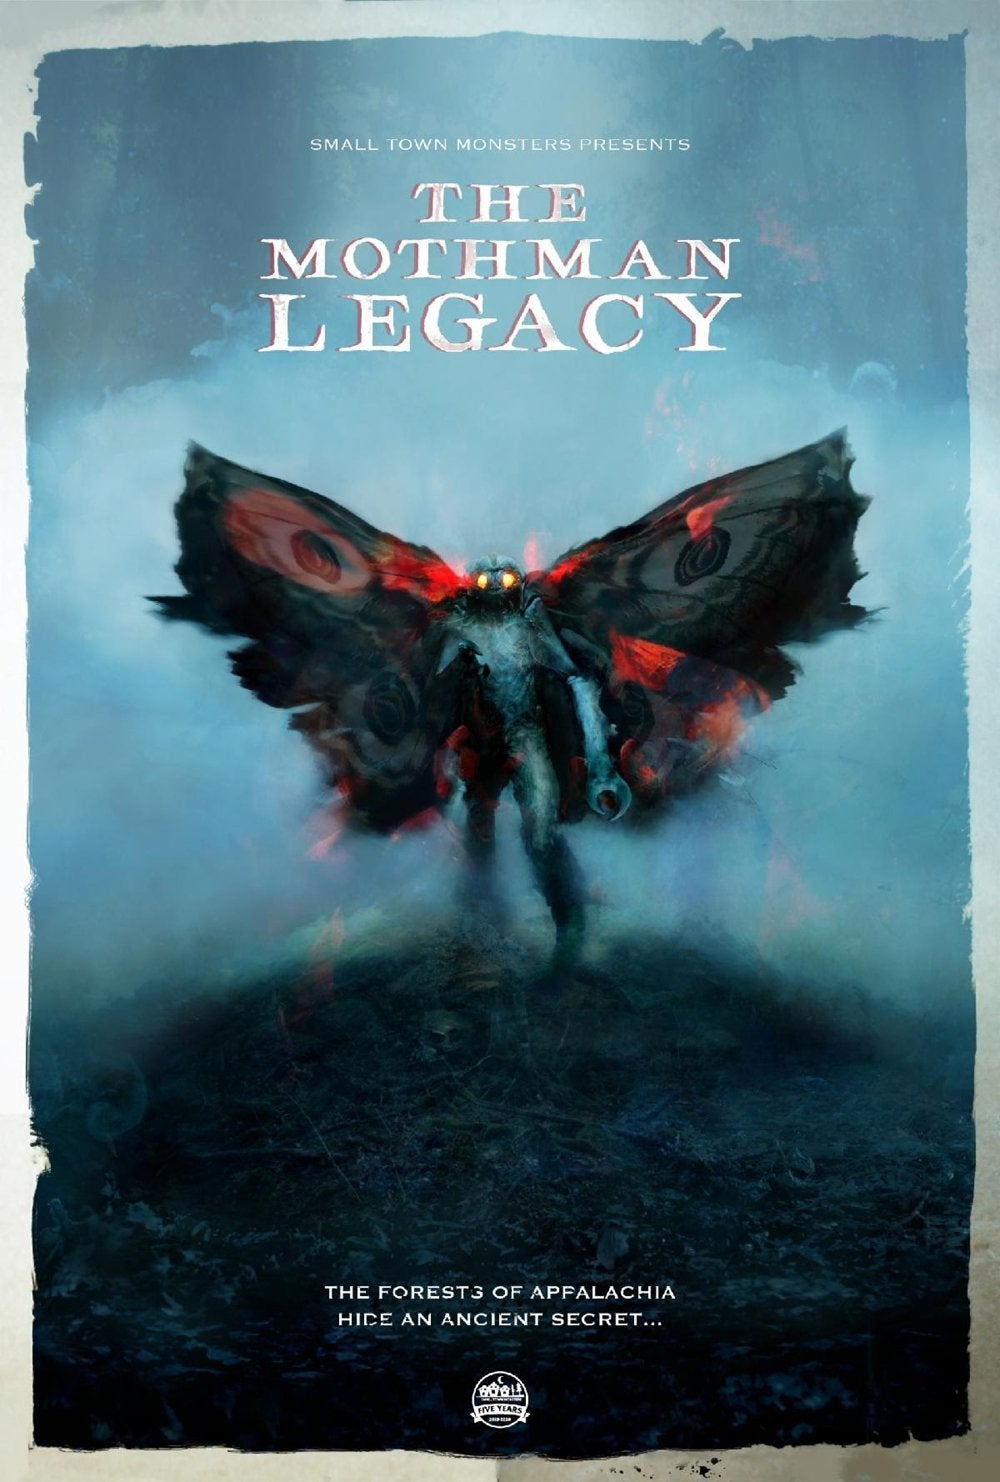 the mothman legacy documentary poster